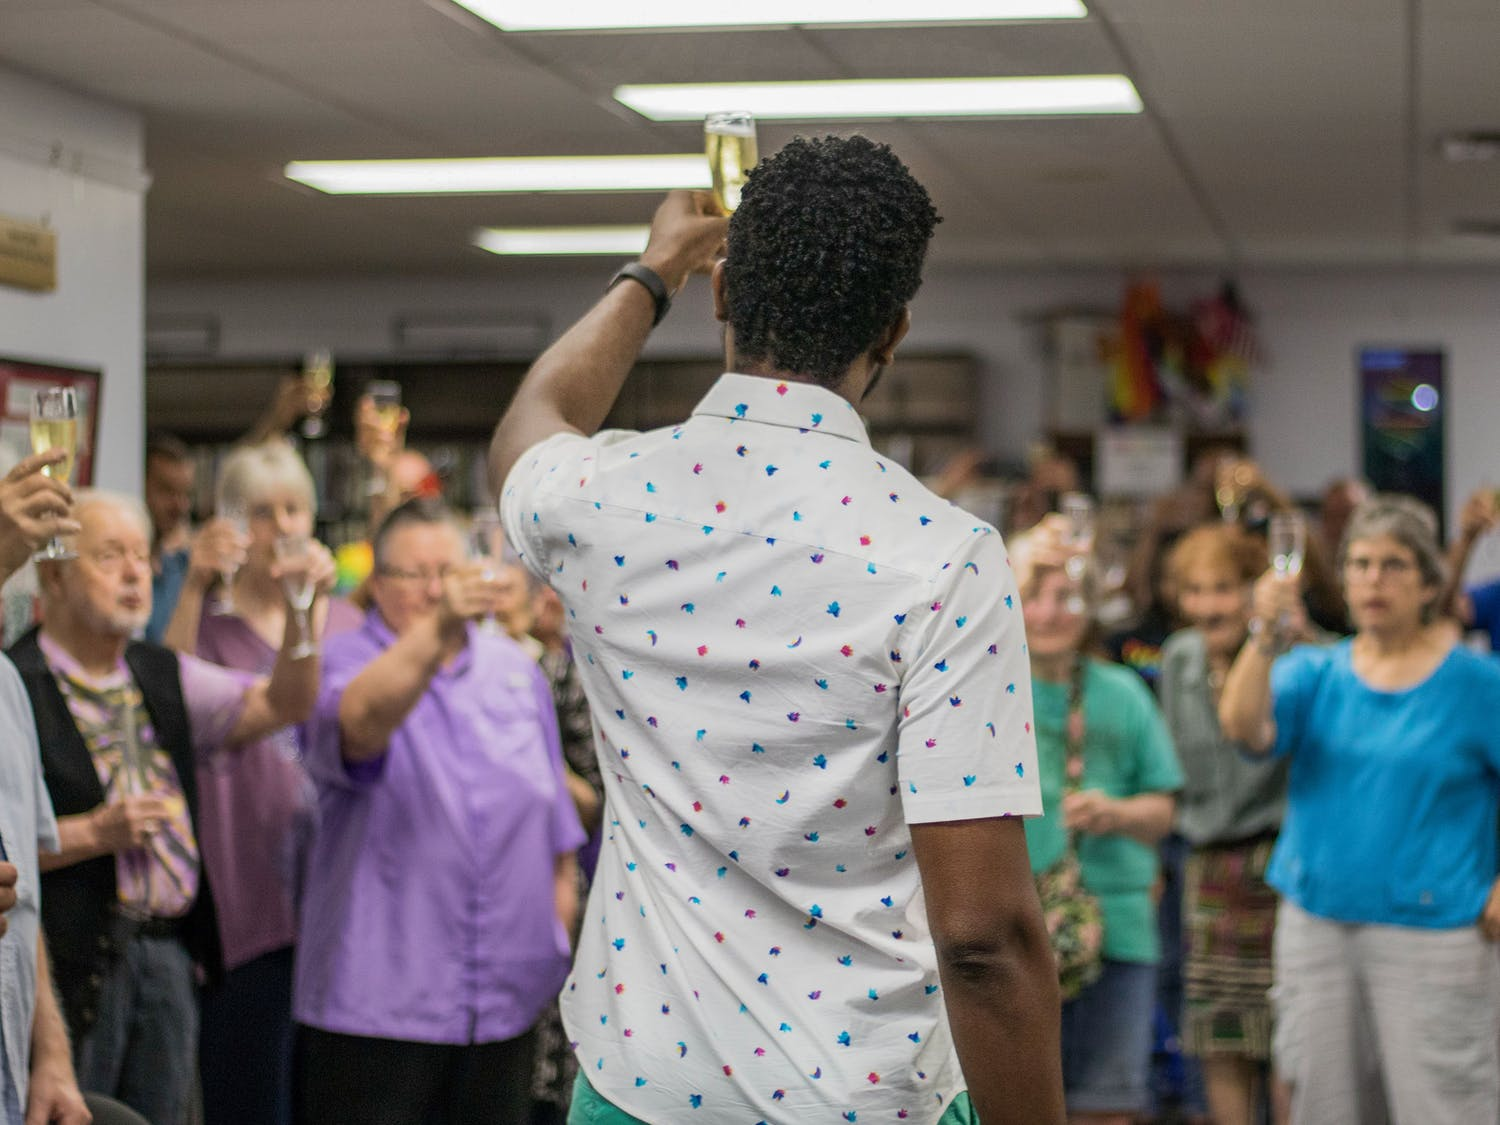 James Brown, 34, raises his glass Saturday night in a toast to the 50th anniversary of the Stonewall Riots and the progress the LGBTQ+ community has made during the Building on Our History Stonewall 50 Celebration party organized by the Pride Community Center of North Central Florida. The toast came after three speakers talked about the past struggles of the LGBTQ+ community, the progress the community has made and how to move forward. Over 50 people attended the event which offered food, refreshments and music.